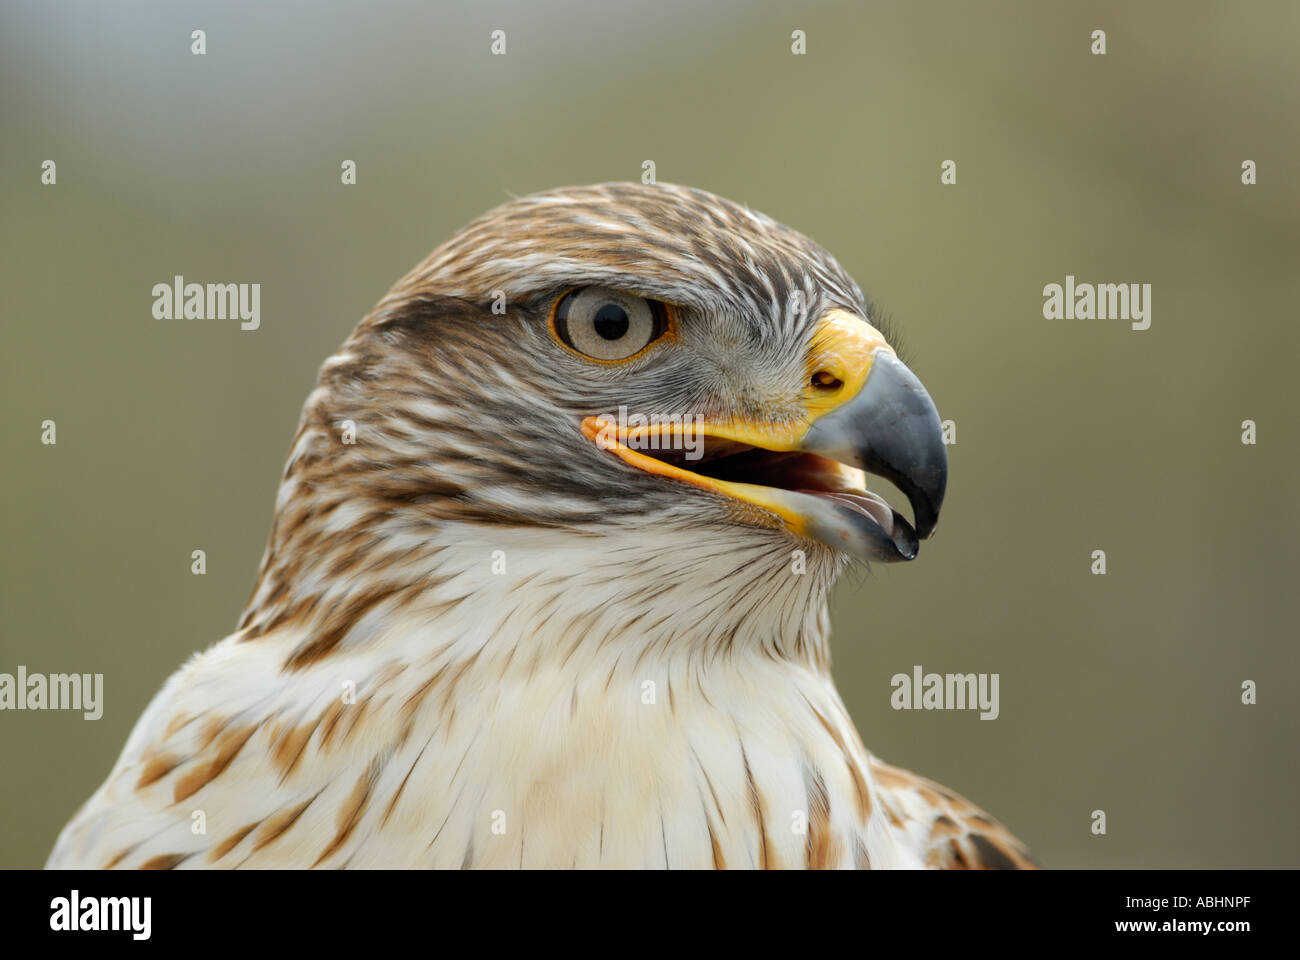 Ferruginous hawk, Buteo regalis, close-up of head looking to side - Stock Image